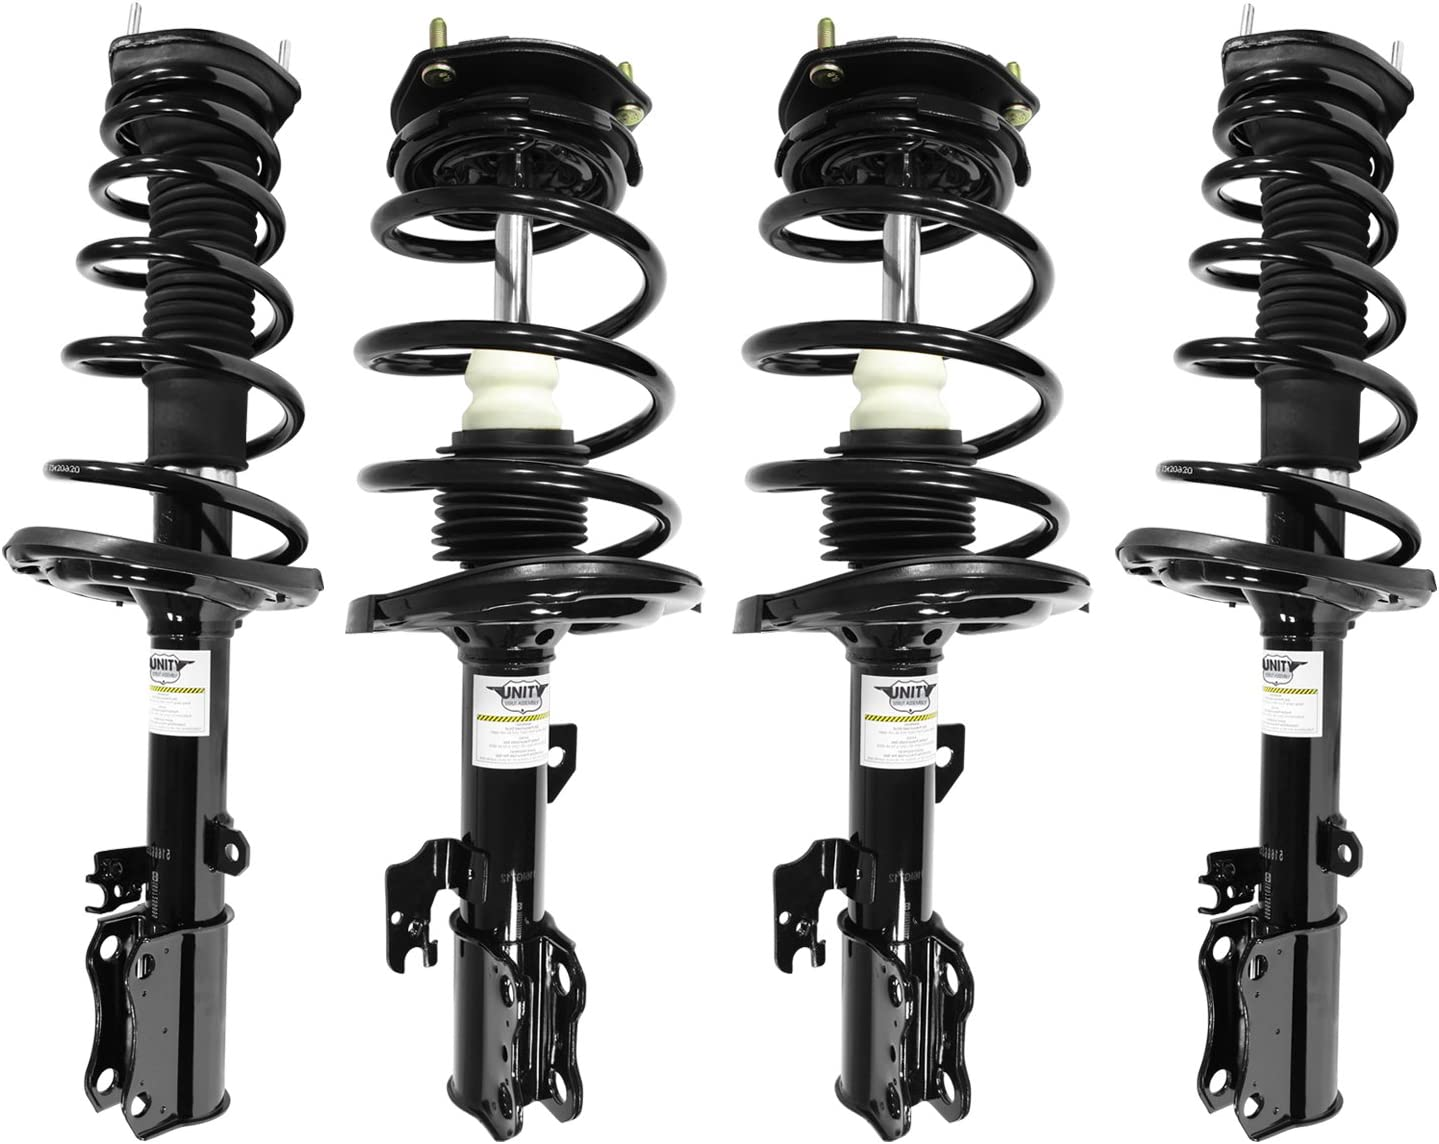 Unity Automotive 2-15351-15352-001 Quick Complete Rear Pair, Spring, and Strut Mount Assembly Kit